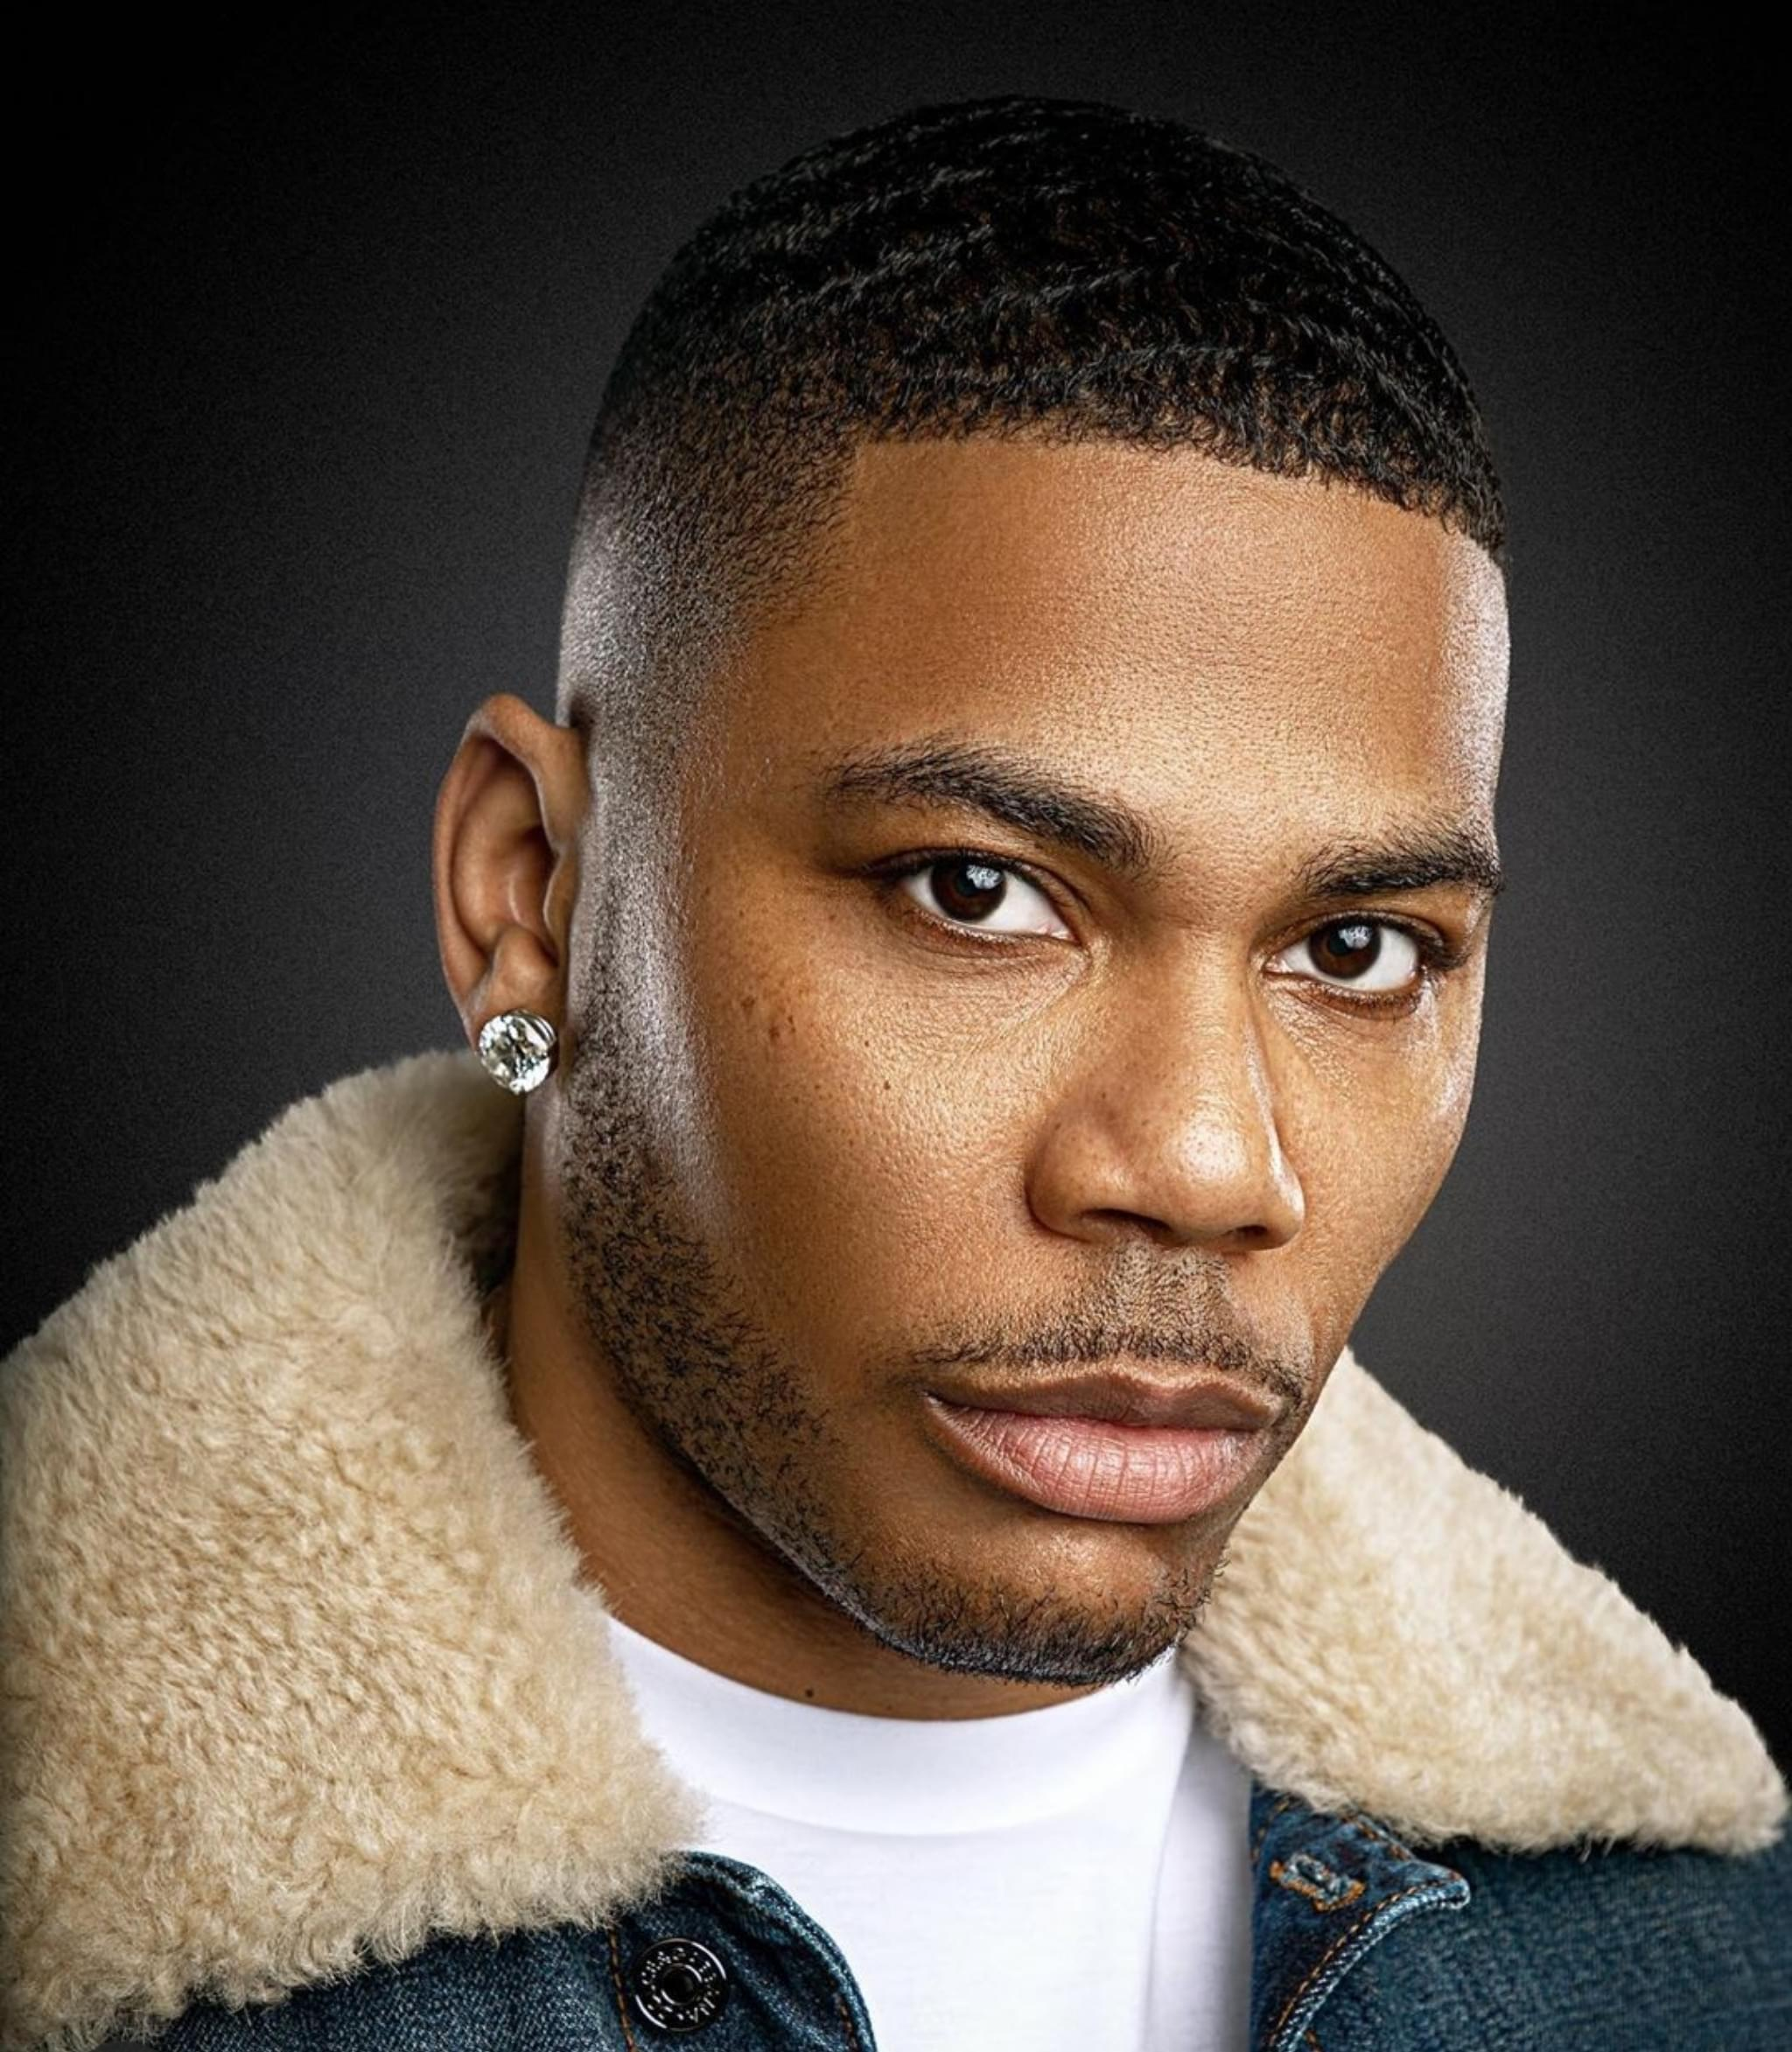 Nelly on The Adam Bomb Show